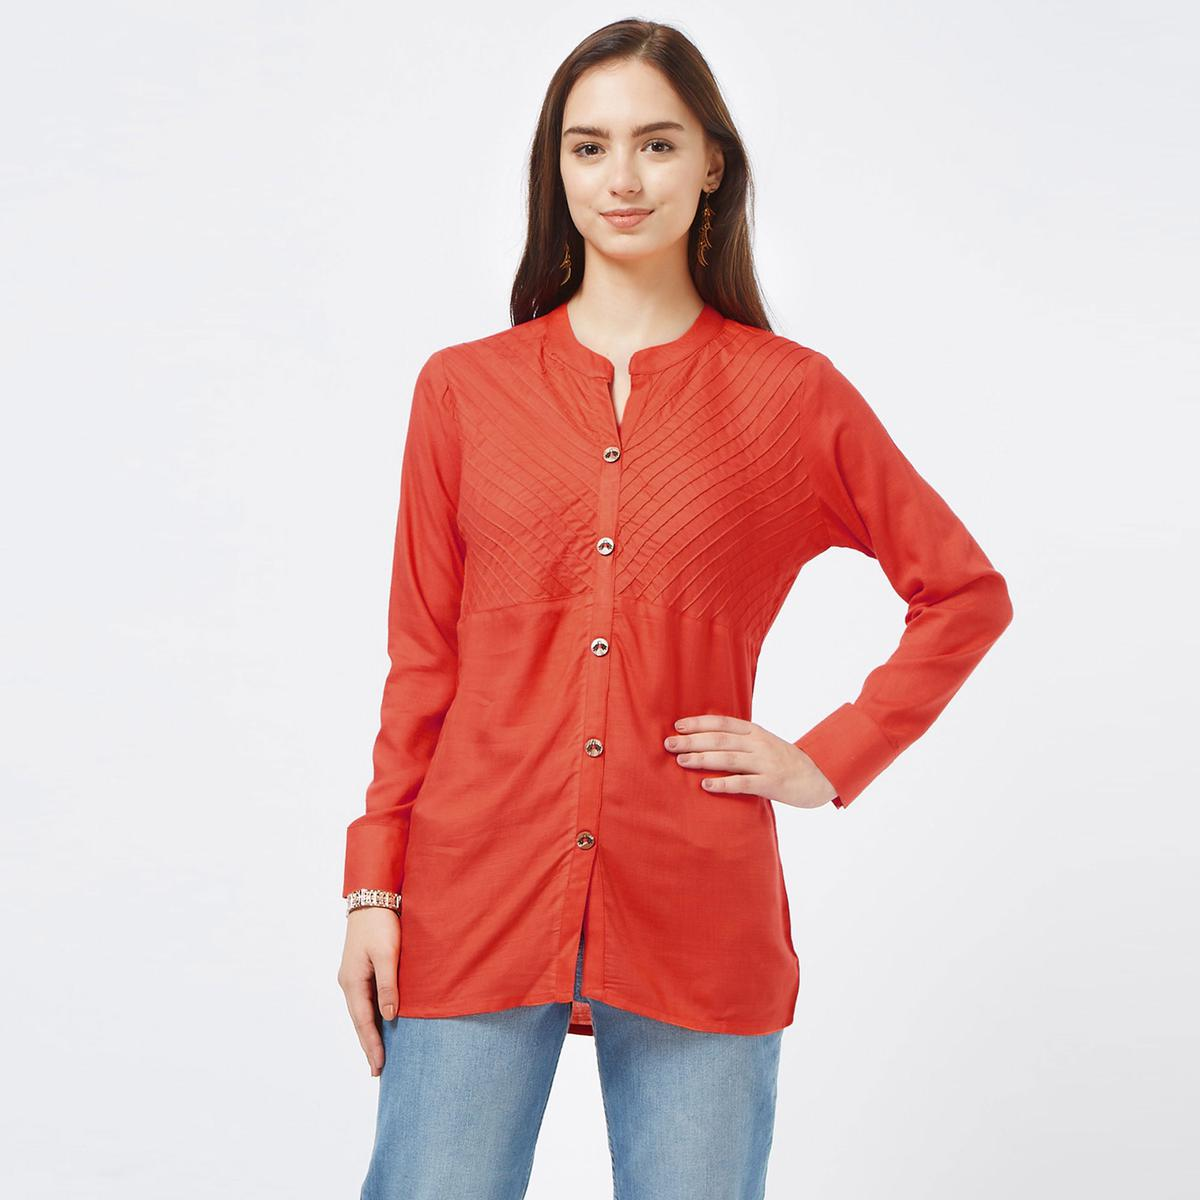 Trendy Coral Red Colored Casual Embroidered Cotton Top